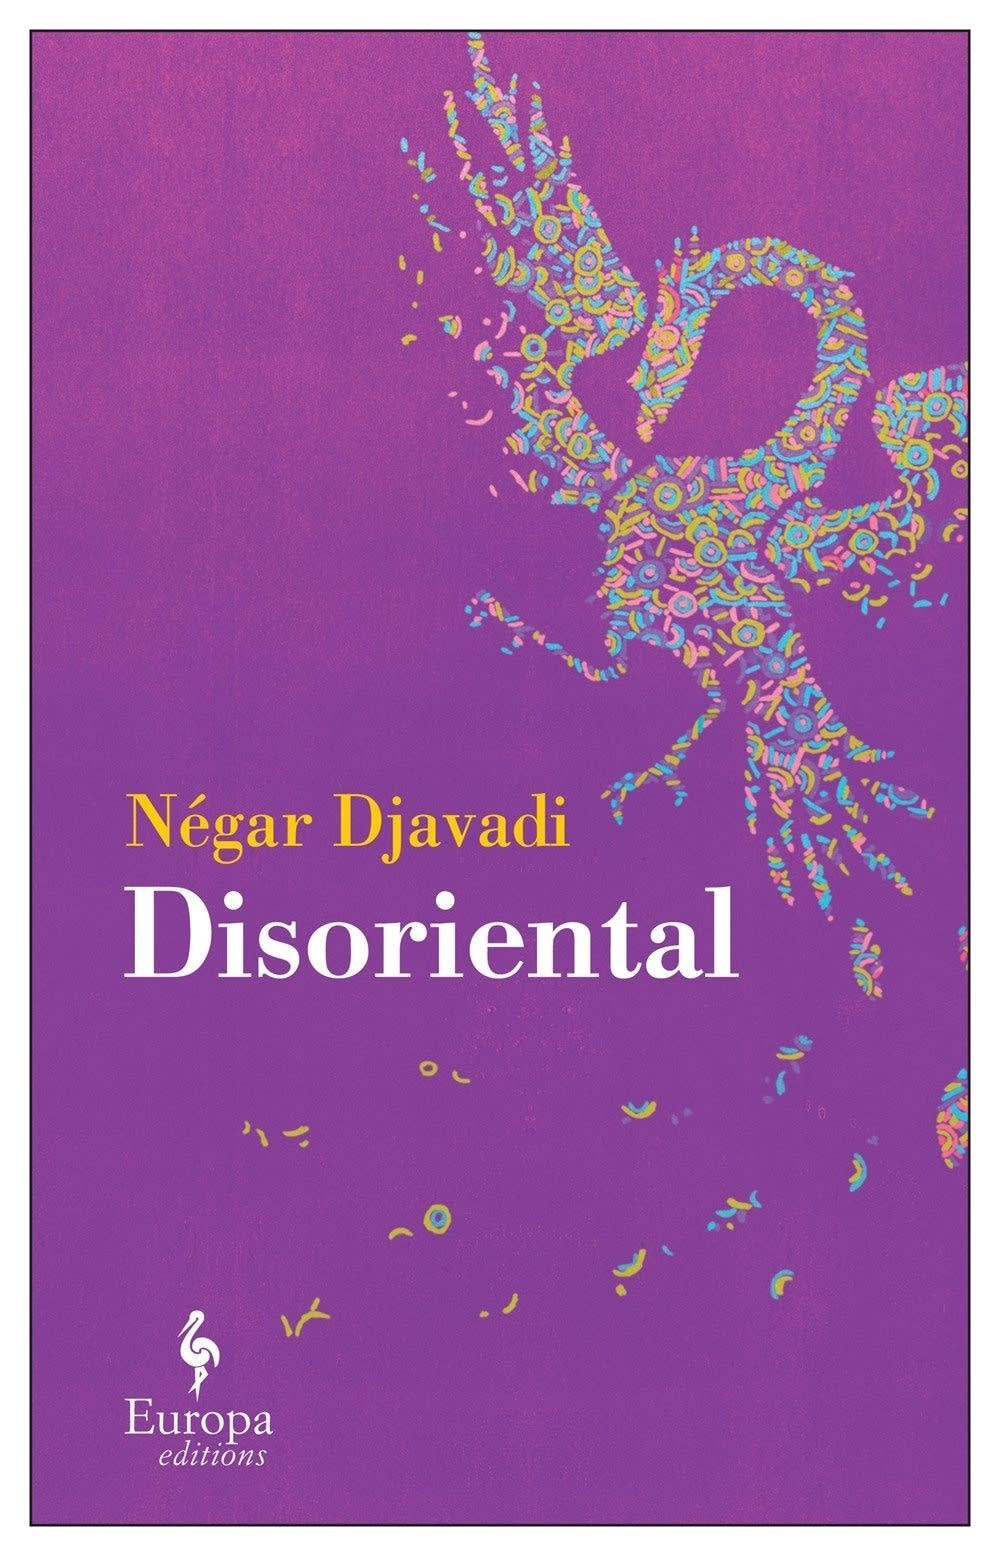 'Disoriental' by Negar Djavadi